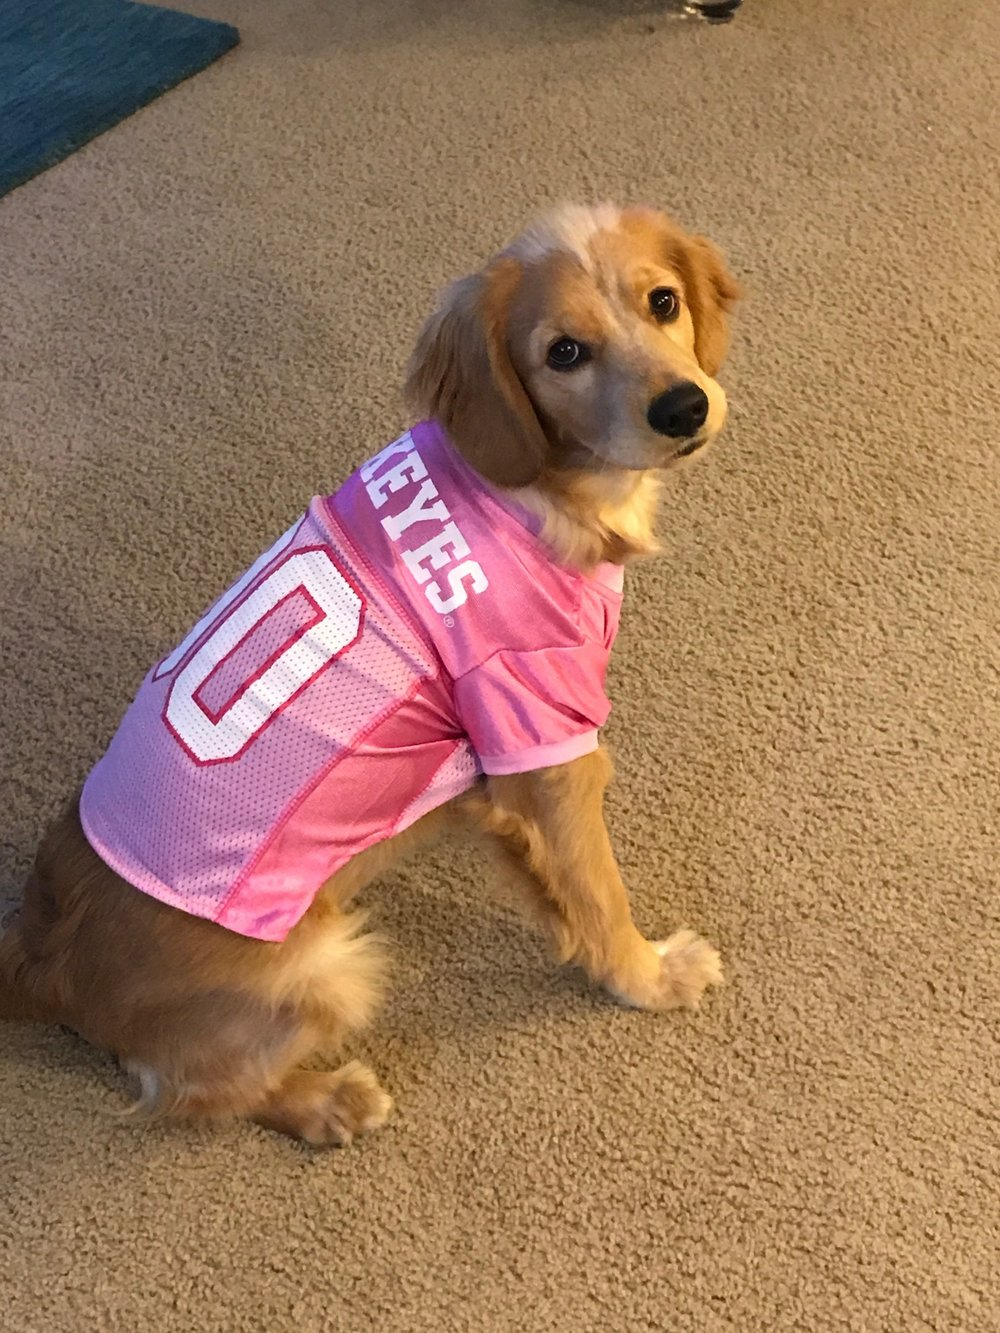 Izzie, 30lbs getting ready for the Buckeye game